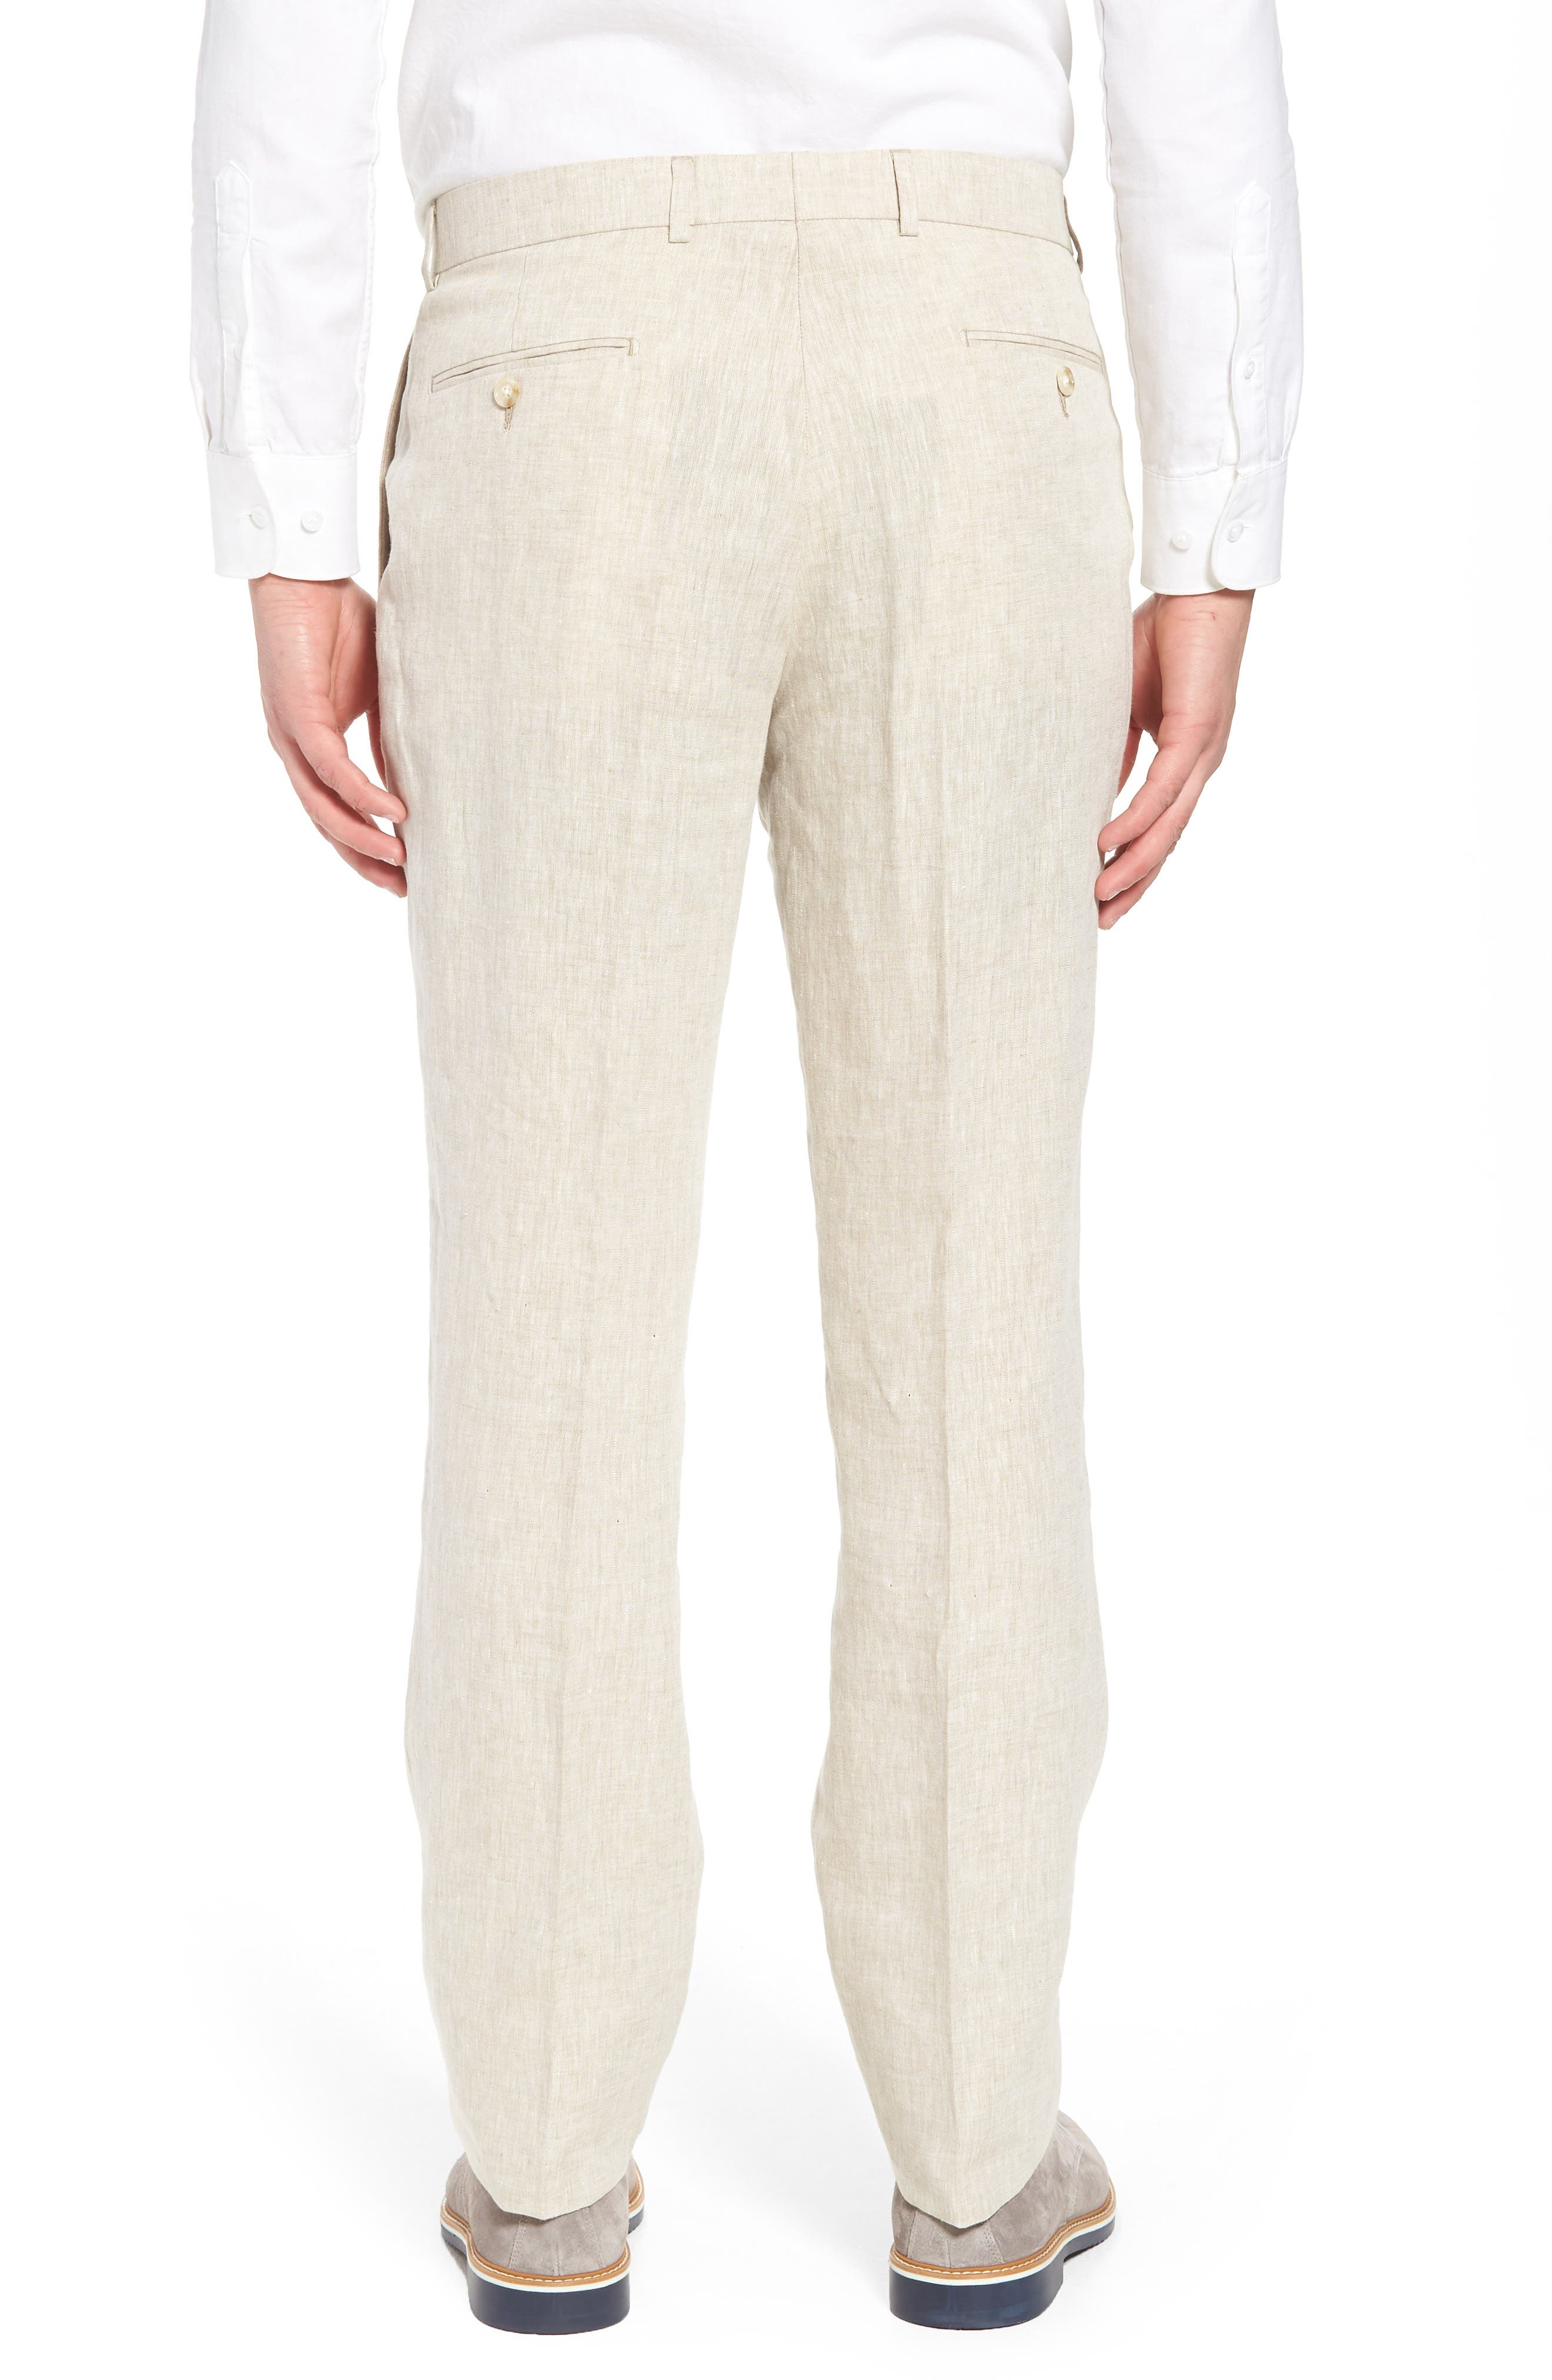 Andrew AIM Flat Front Linen Trousers,                             Alternate thumbnail 2, color,                             105